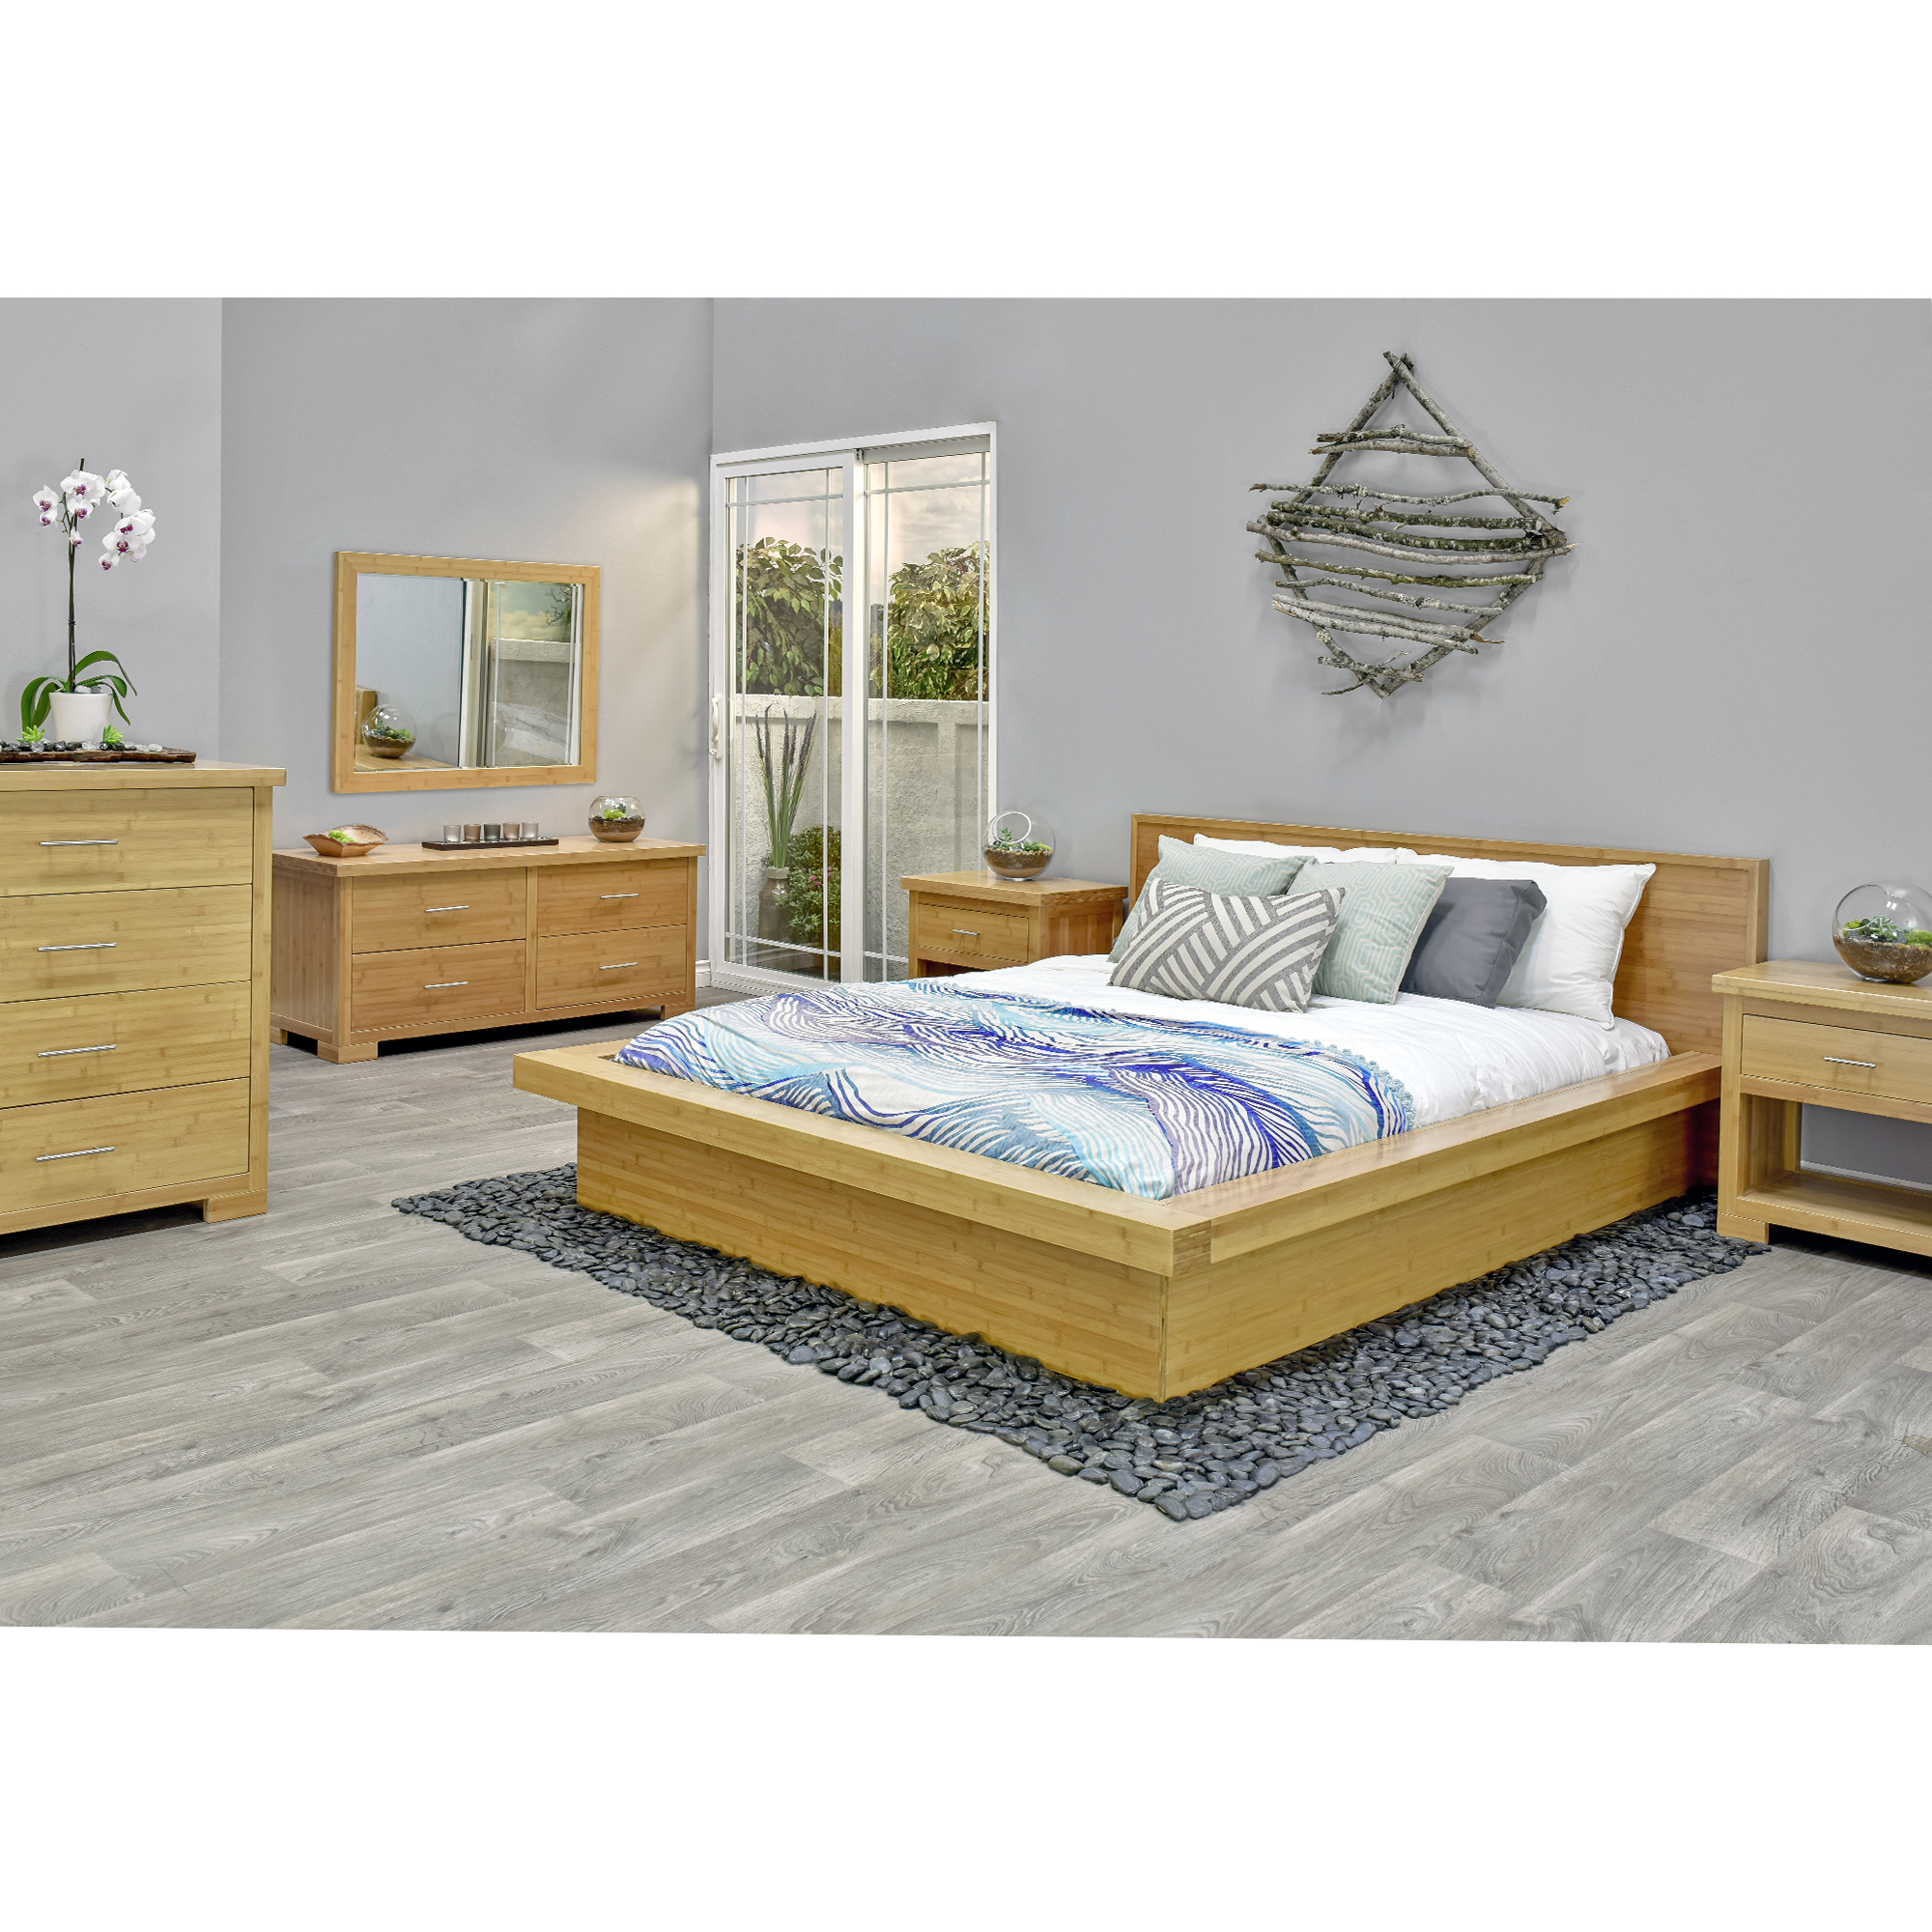 6 Piece Nara Bamboo Bedroom Set